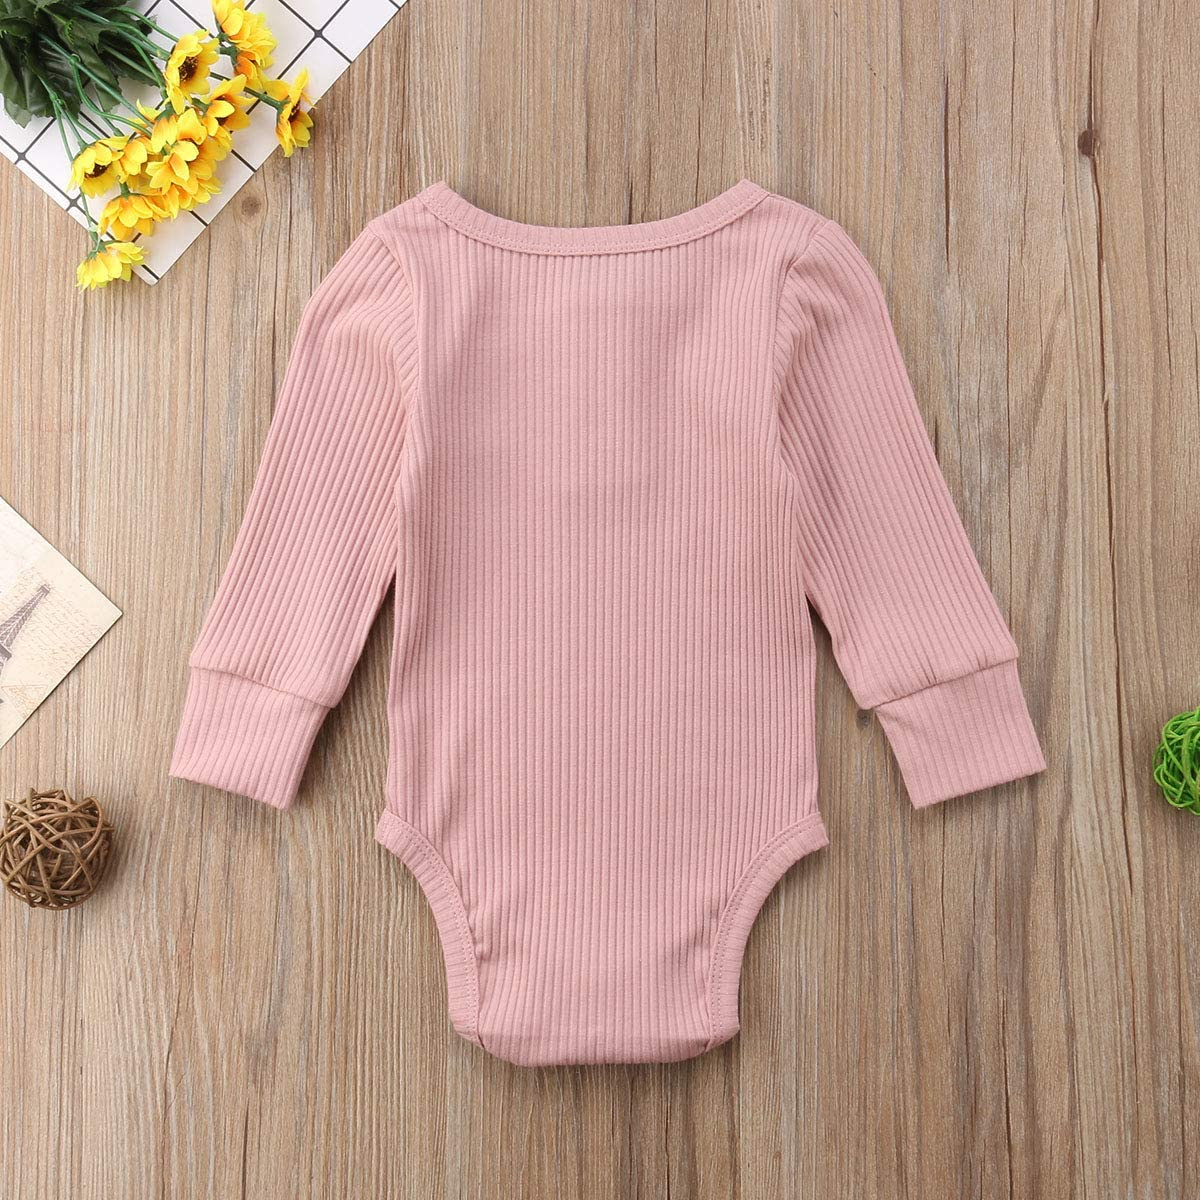 Luckinbaby Newborn Unisex Baby Solid Onesies Basic Plain Rib Stitch Long Sleeve Bodysuit Clothes for Infant Boy Girl